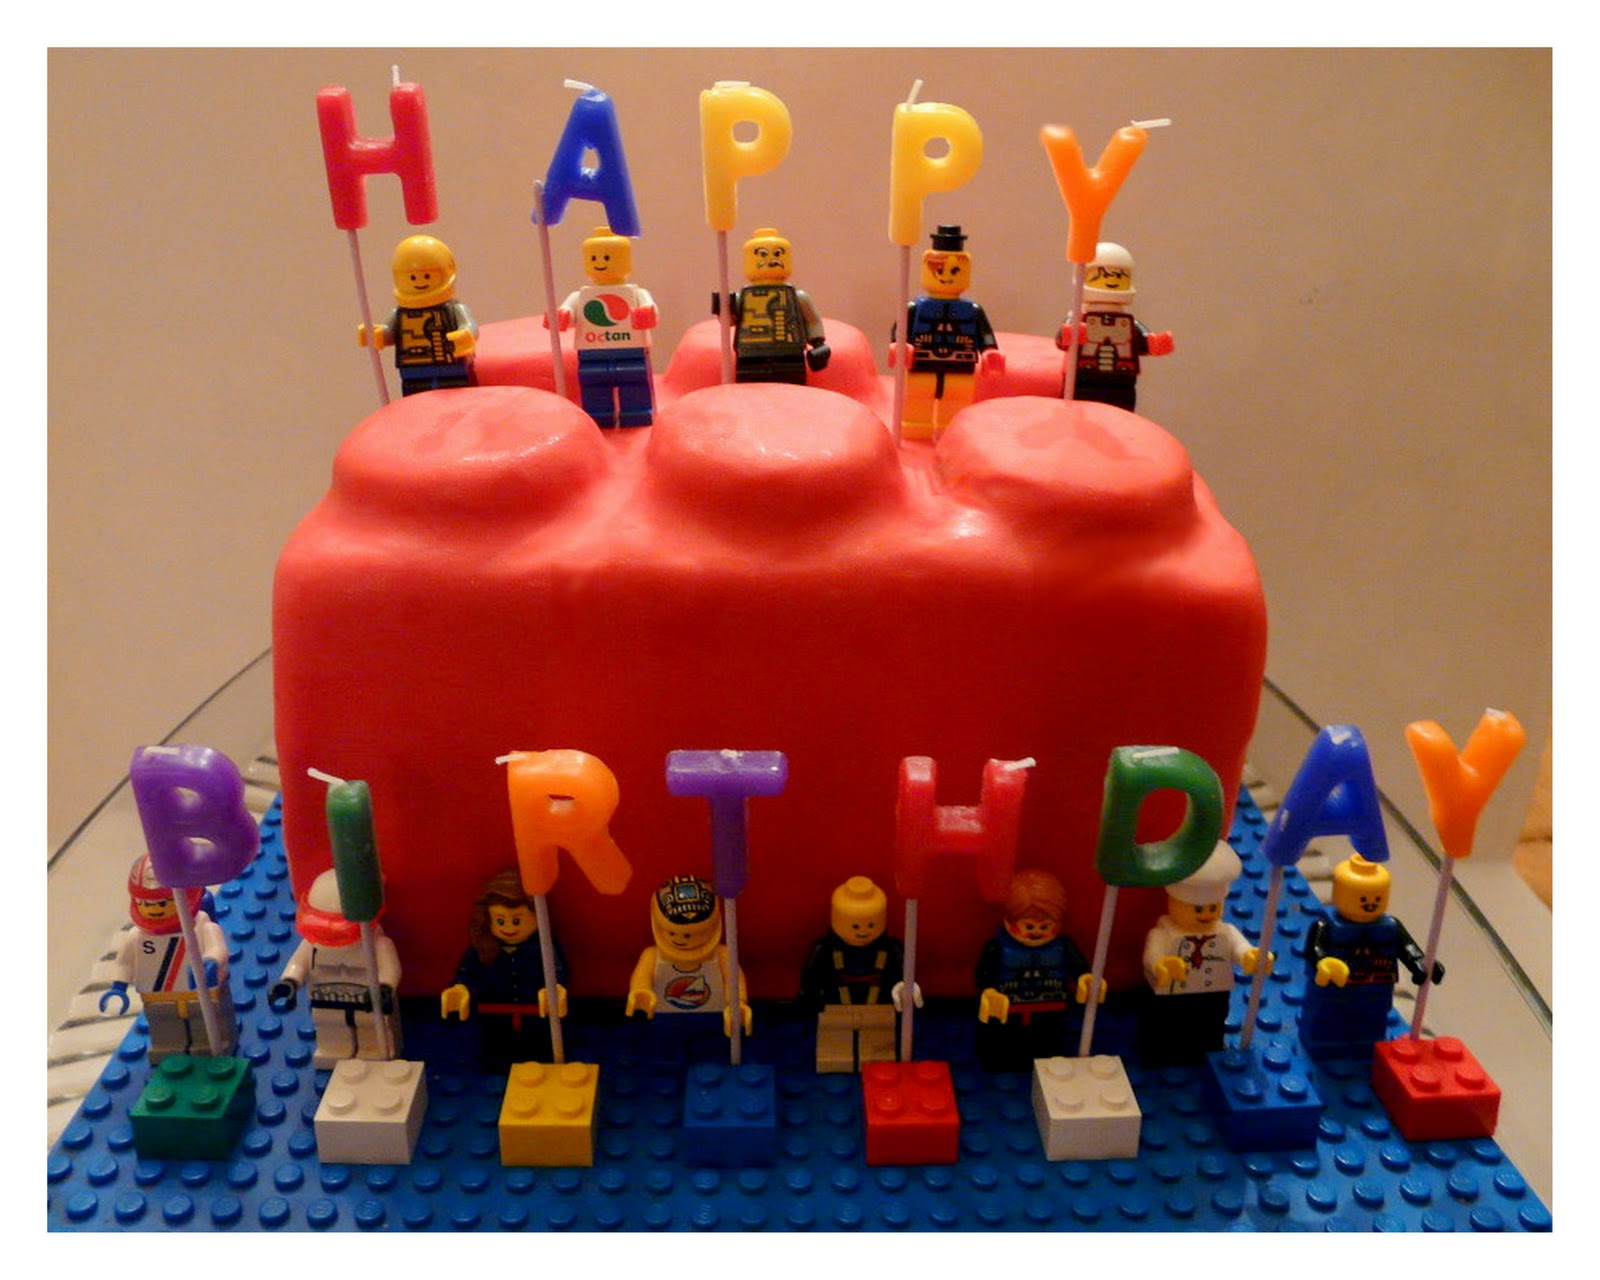 Lego Themed Cake Design : *Jennuine by Rook No. 17*: Inspiring Projects with Flowers ...